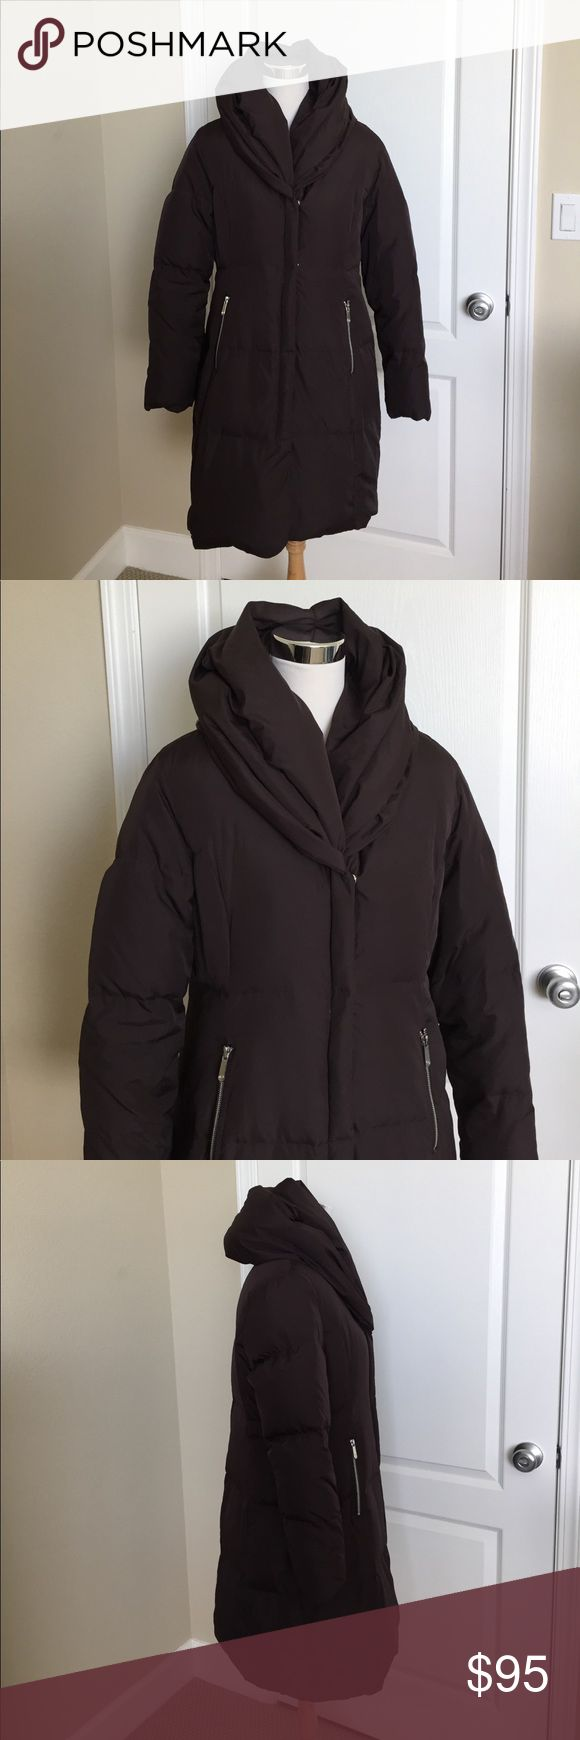 MICHAEL KORS COAT A warm winter puffer coat by Michael Kors that is in great condition. The only wear I know of is the right hand side pocket came undone on the inside. You can see it on the last picture. Easy fix with simple sewing. The color of the coat is brown. Michael Kors Jackets & Coats Puffers